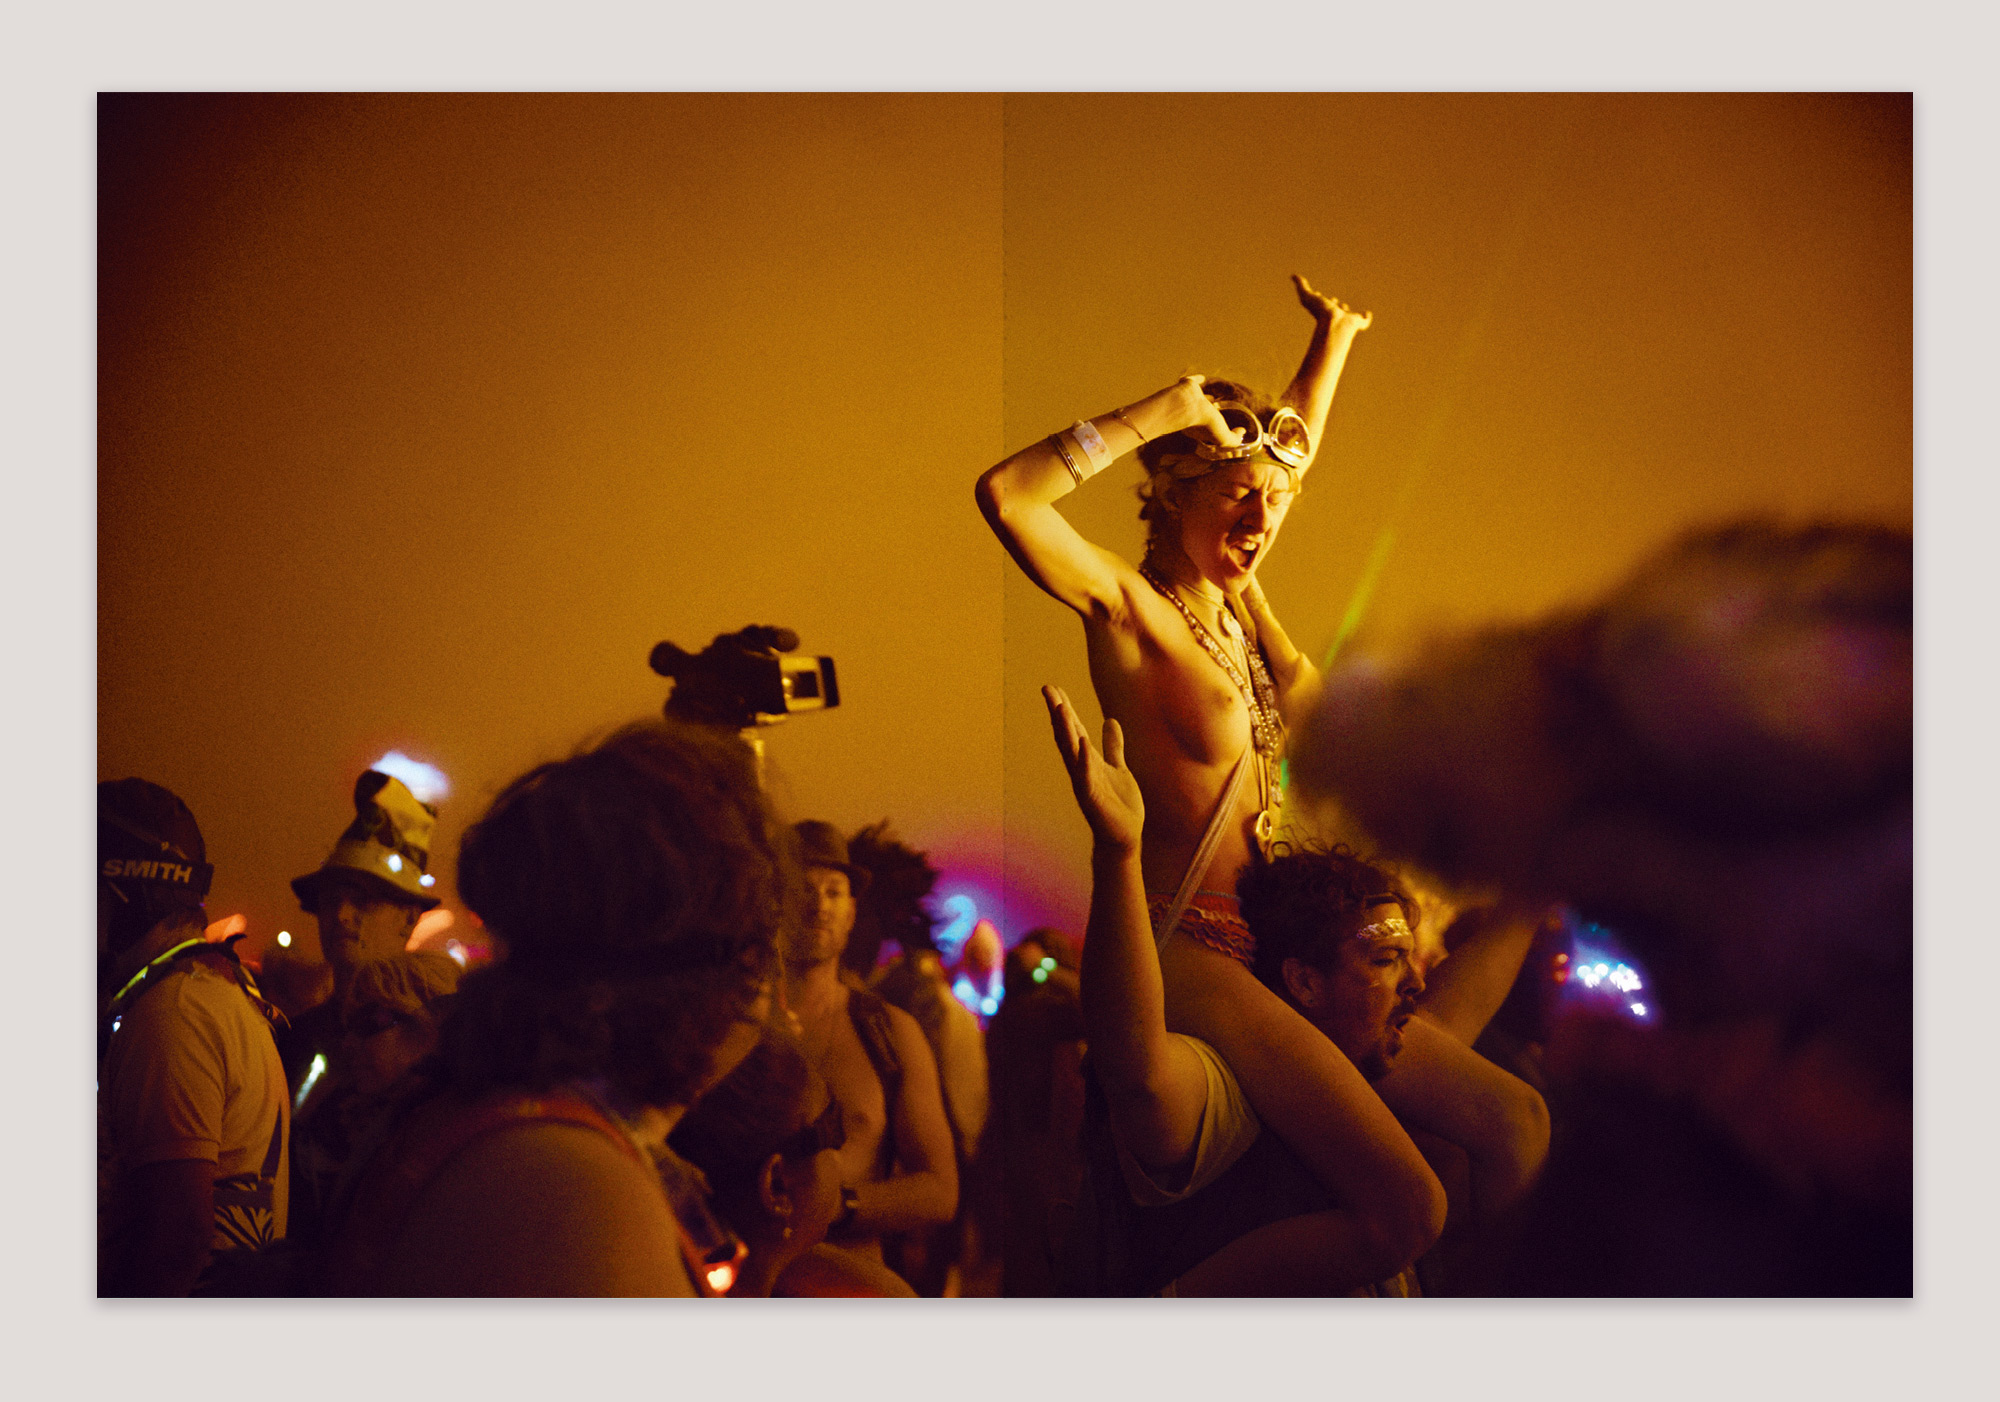 Burning_Man_7